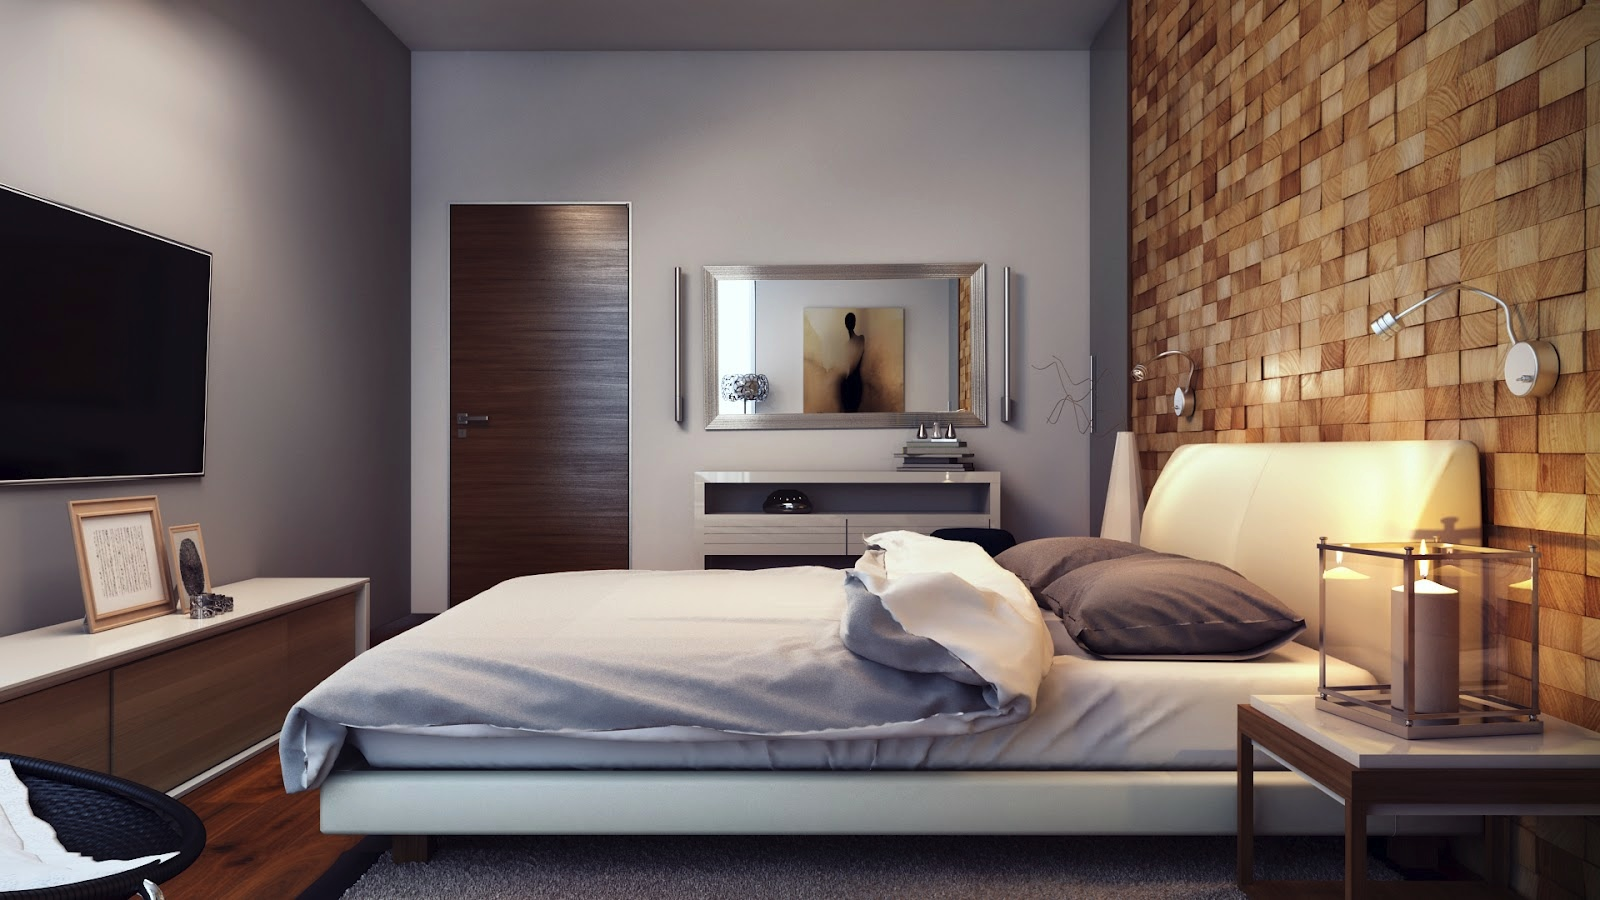 wood block textured feature wall interior design ideas. Black Bedroom Furniture Sets. Home Design Ideas